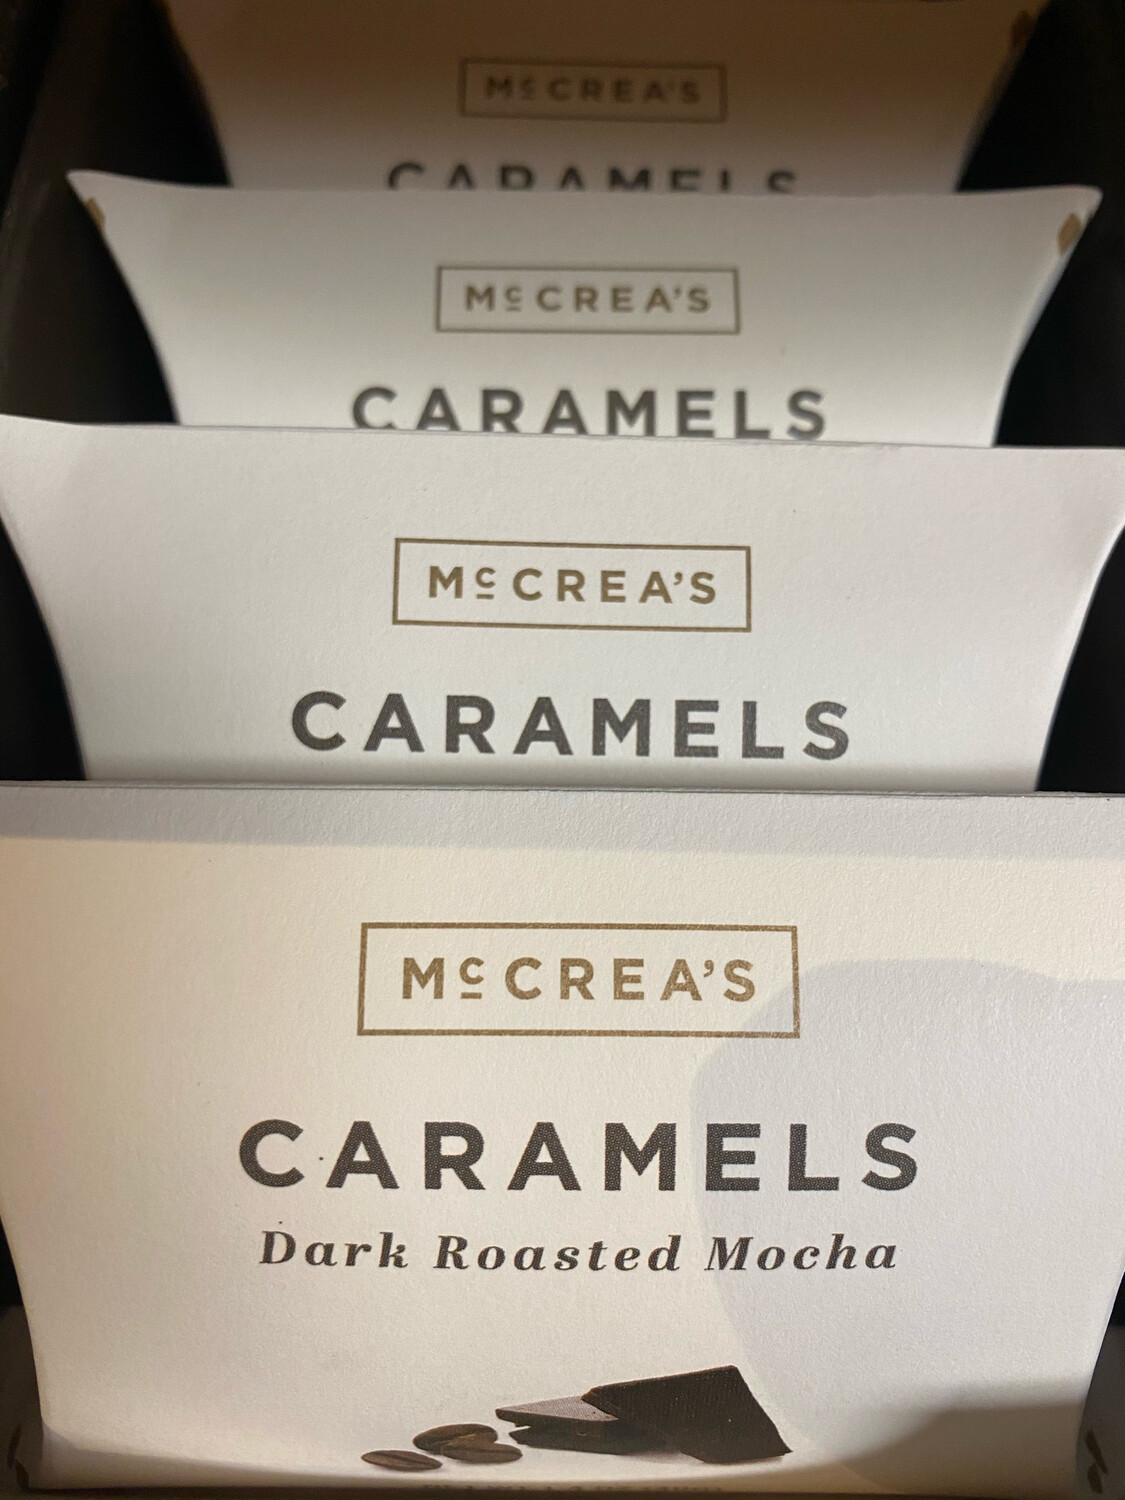 McCrea's Dark Roasted Mocha Caramel Pillow Box